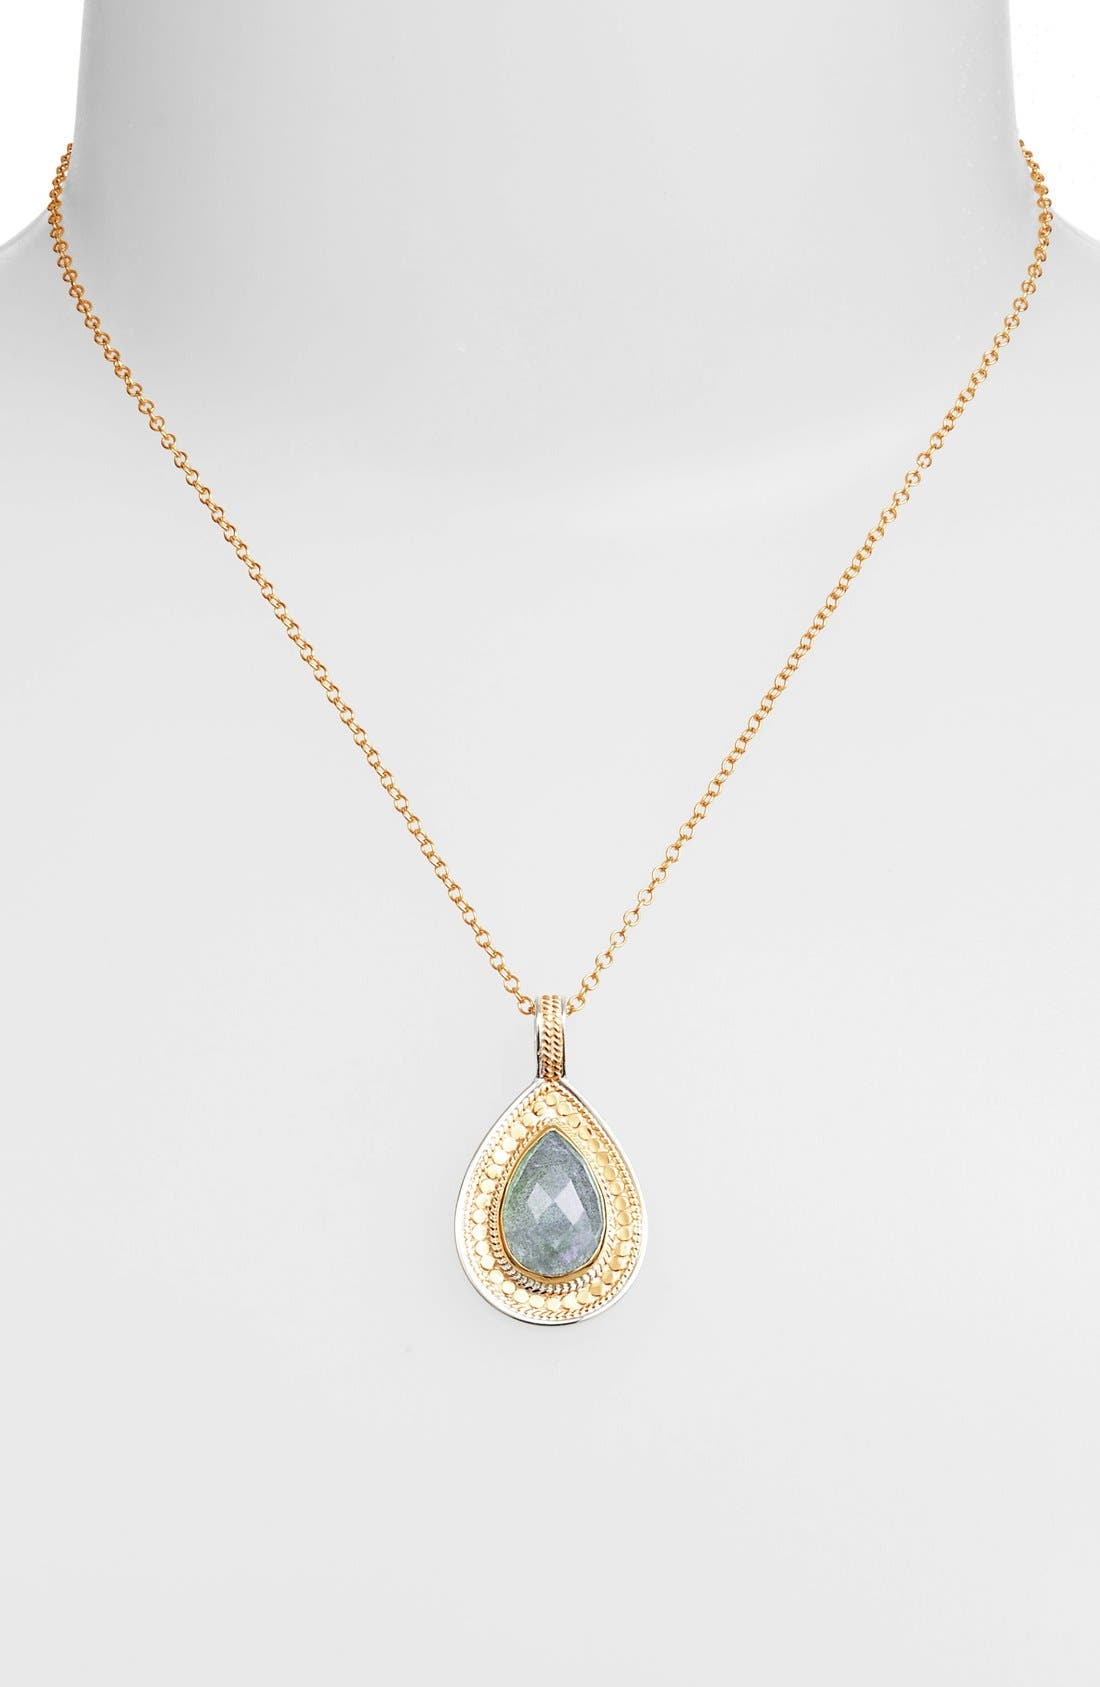 Alternate Image 1 Selected - Anna Beck 'Gili' Teardrop Pendant Necklace (Online Only)